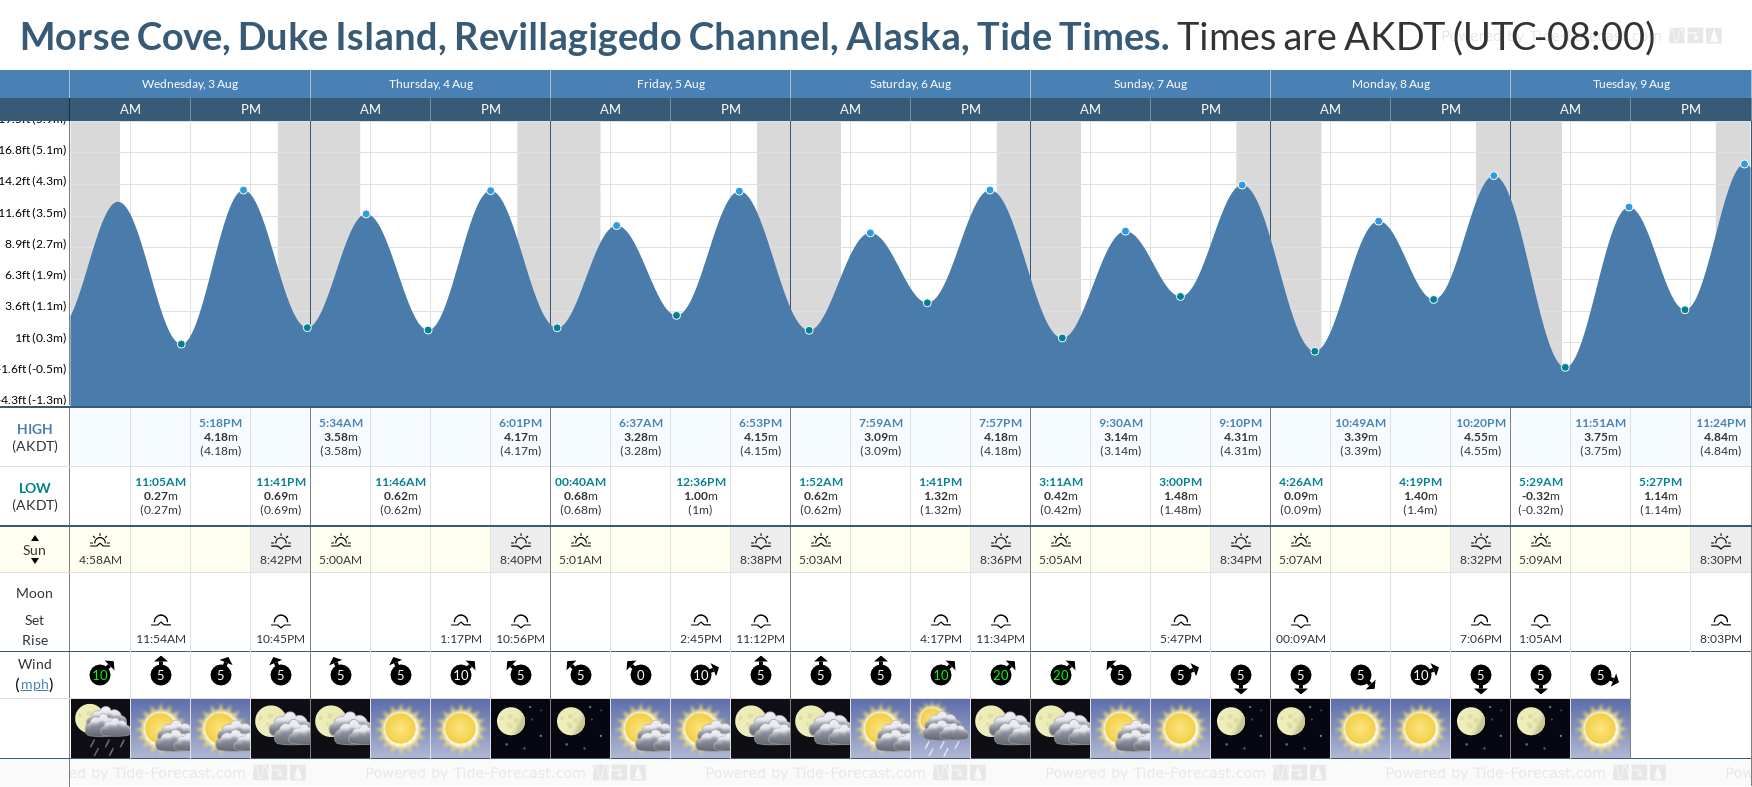 Morse Cove, Duke Island, Revillagigedo Channel, Alaska Tide Chart including high and low tide tide times for the next 7 days